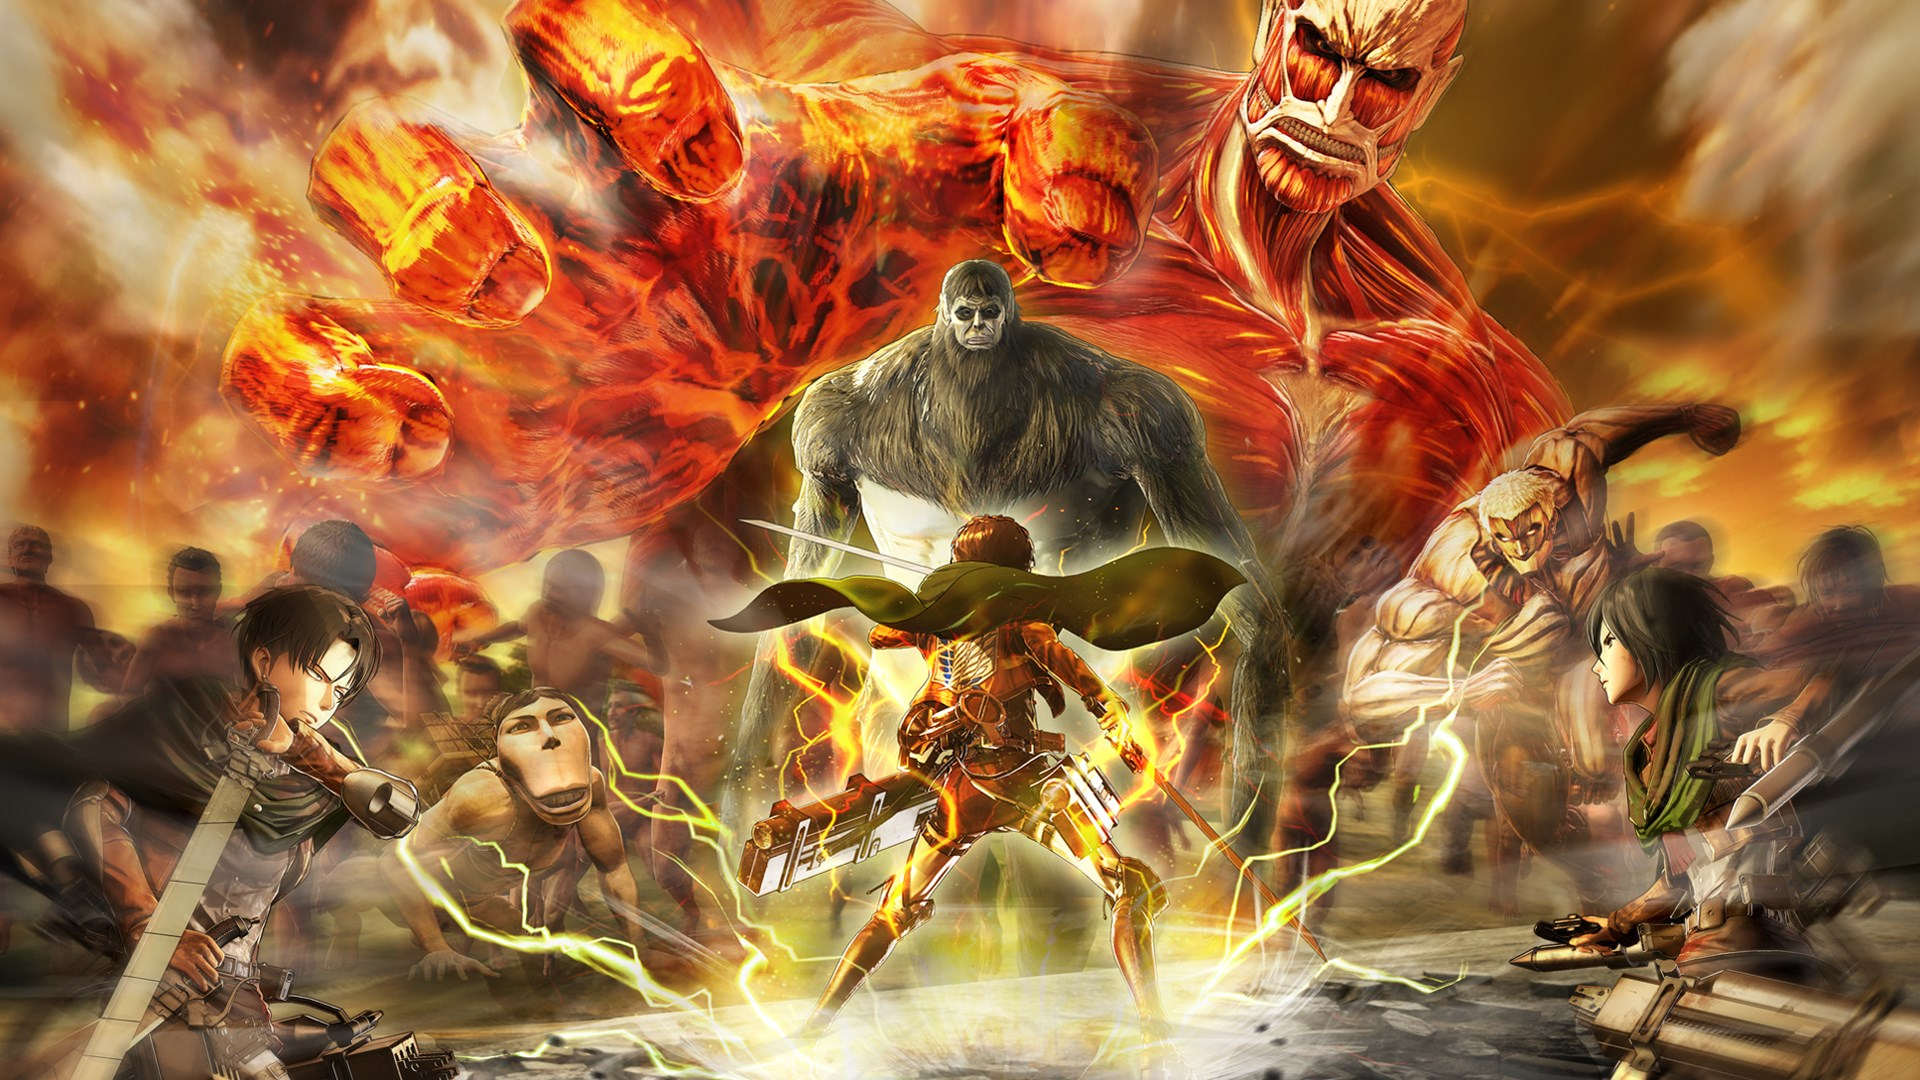 Attack on Titan Season 4 Episode 4 Release Date and Watch Online